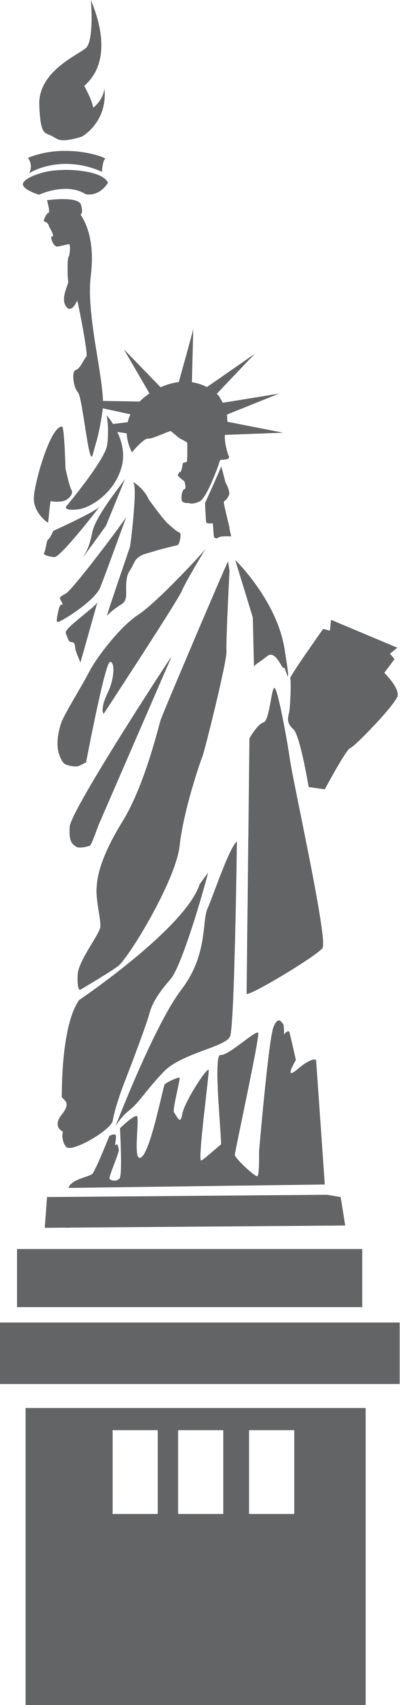 Figurine clipart shadow Best transparent liberty Illustration with